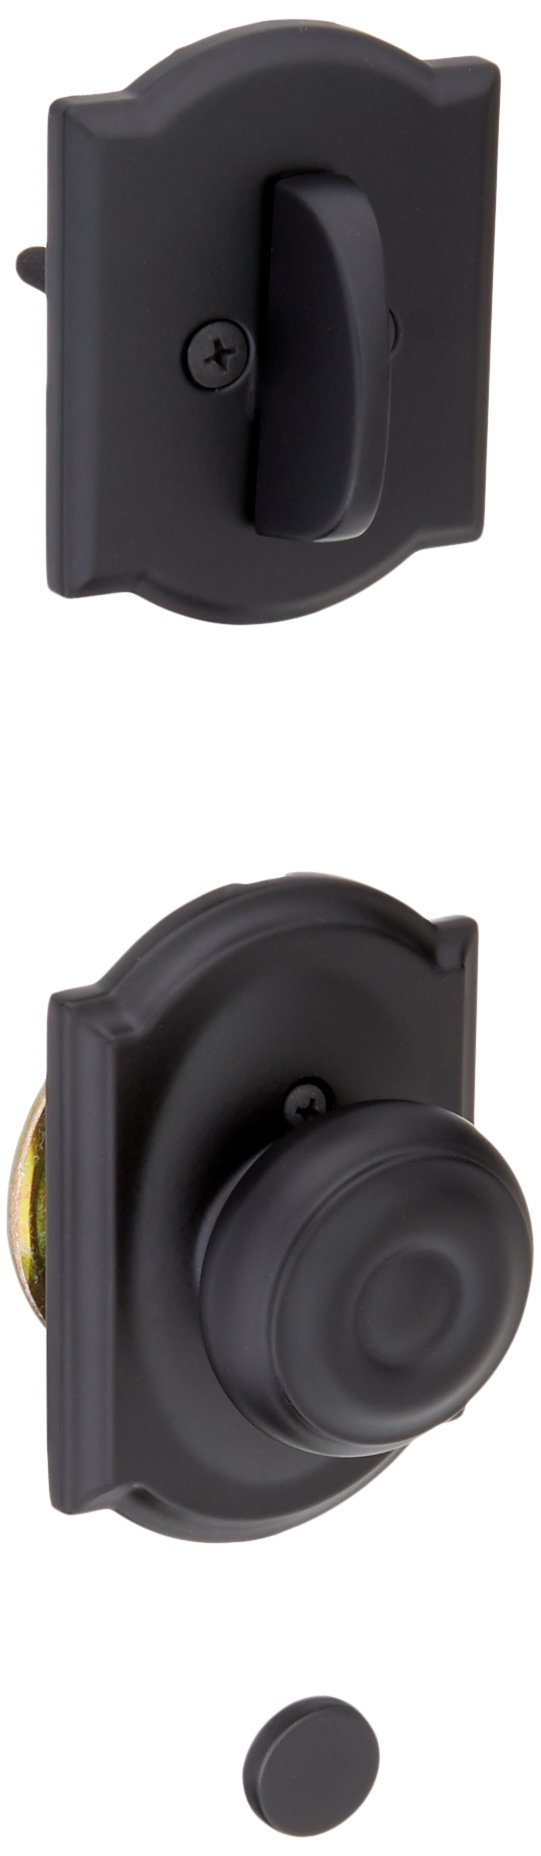 Schalge F94GEO622CAM Matte Black Interior Pack Georgian Knob Dummy Interior Pack with Deadbolt Cover Plate and Decorative Camelot Rose by Schalge